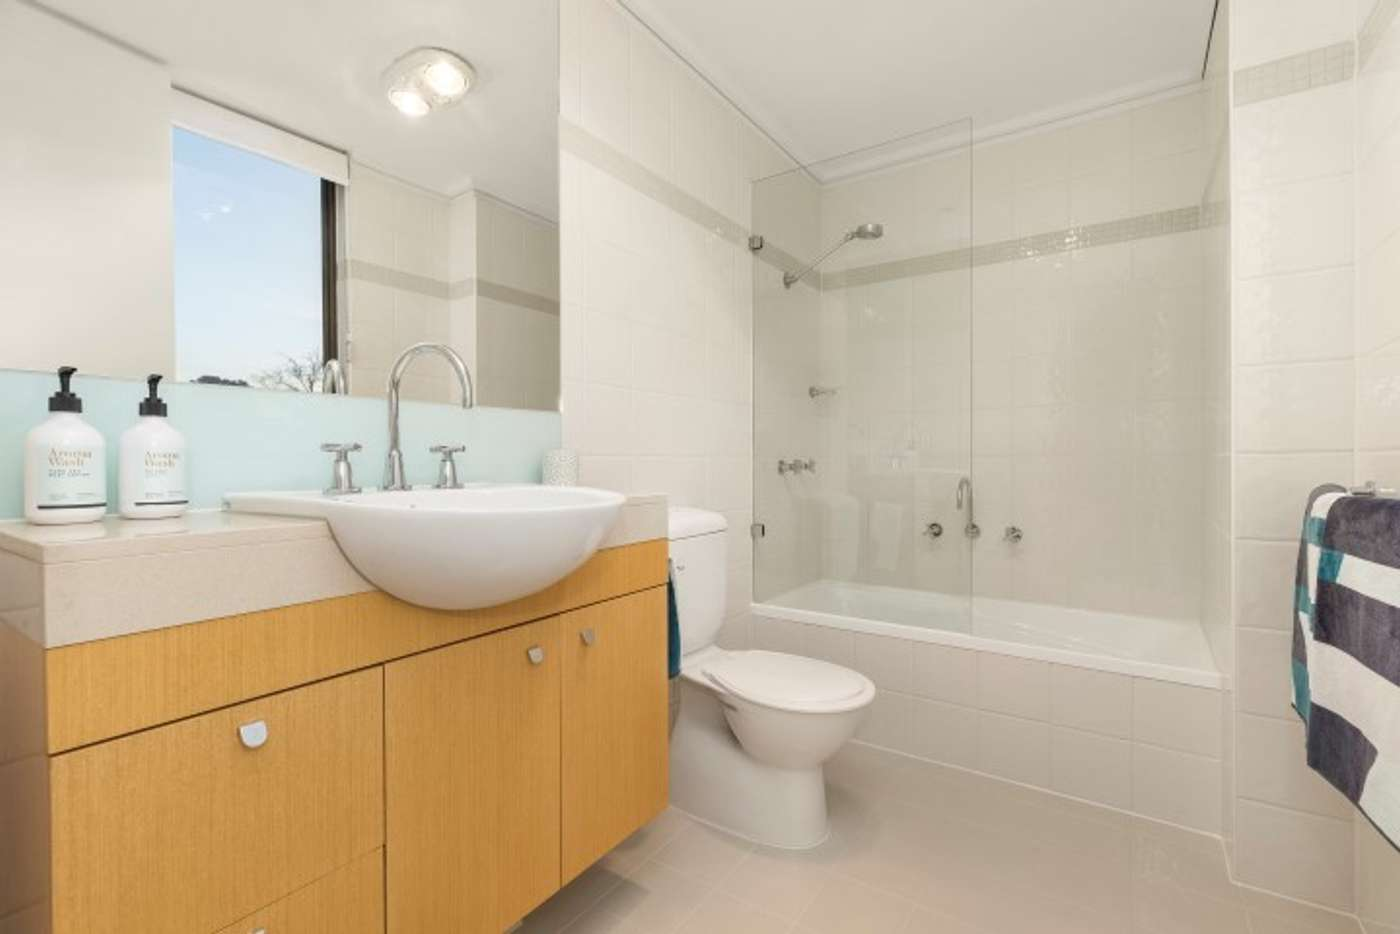 Seventh view of Homely townhouse listing, 97-101 Cruikshank Street, Port Melbourne VIC 3207